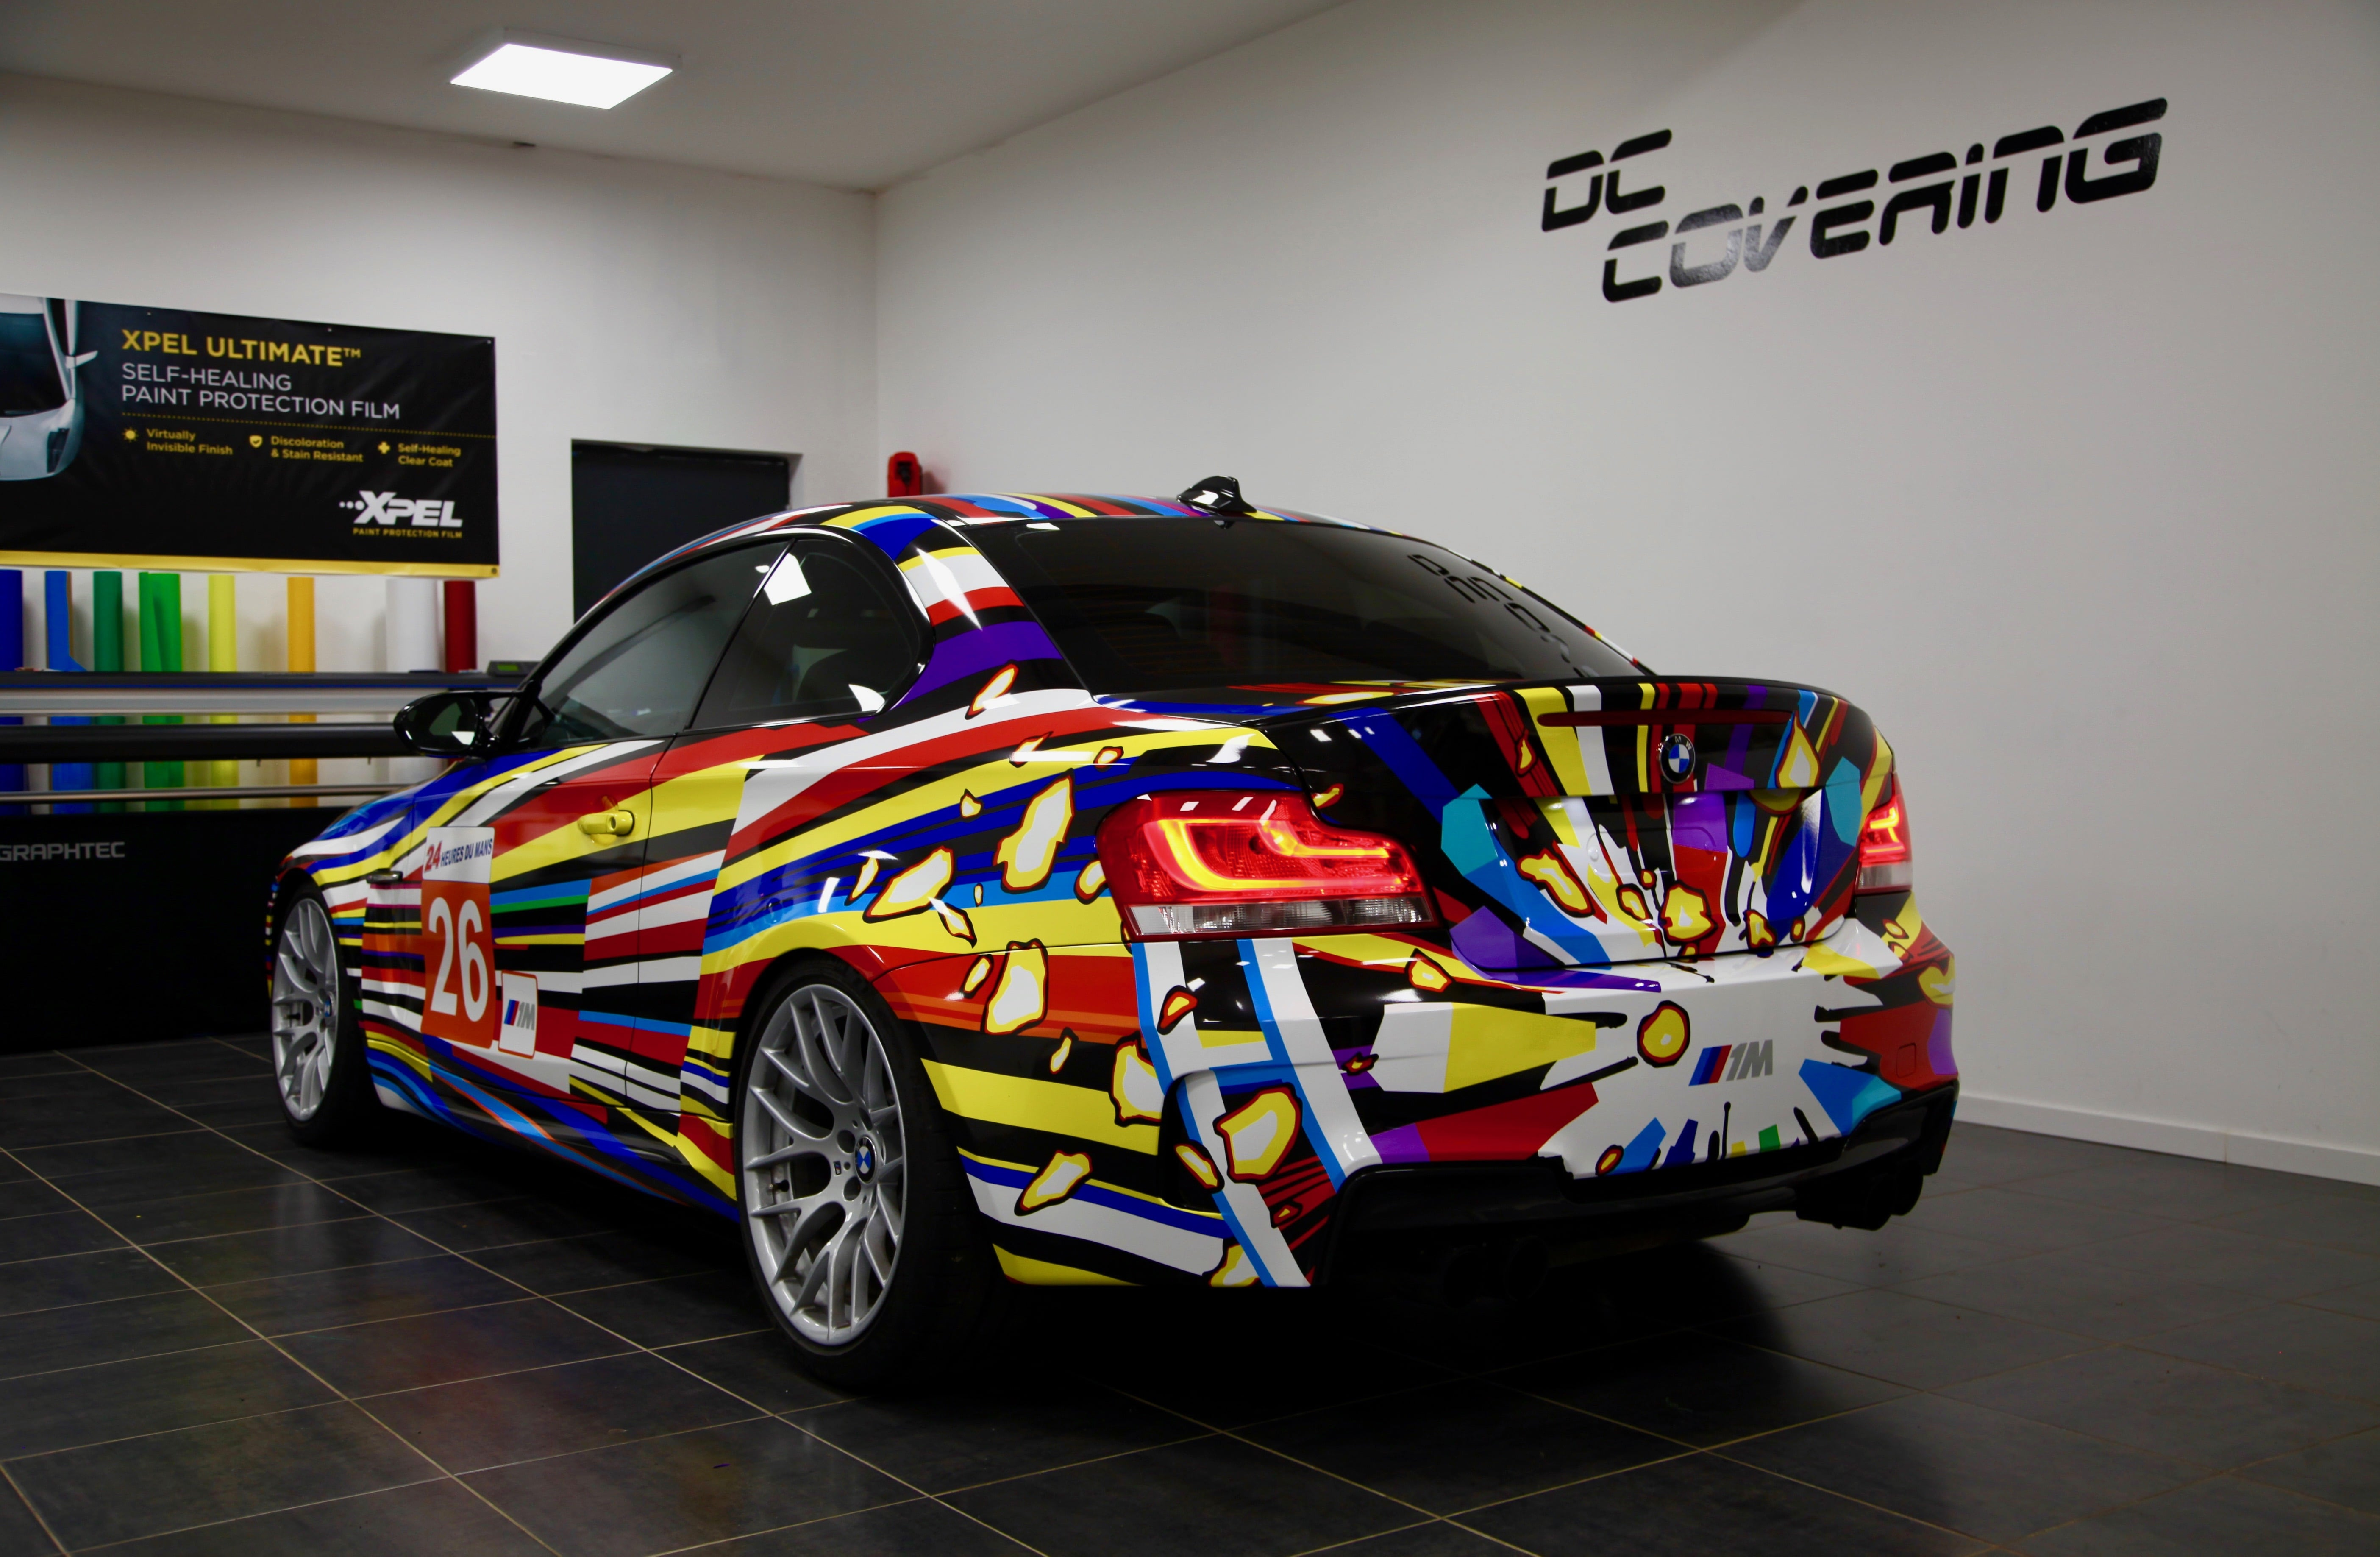 Image 29 of 50 2018 saratoga invitational auto show limited dc covering bmw 1m art car publicscrutiny Gallery